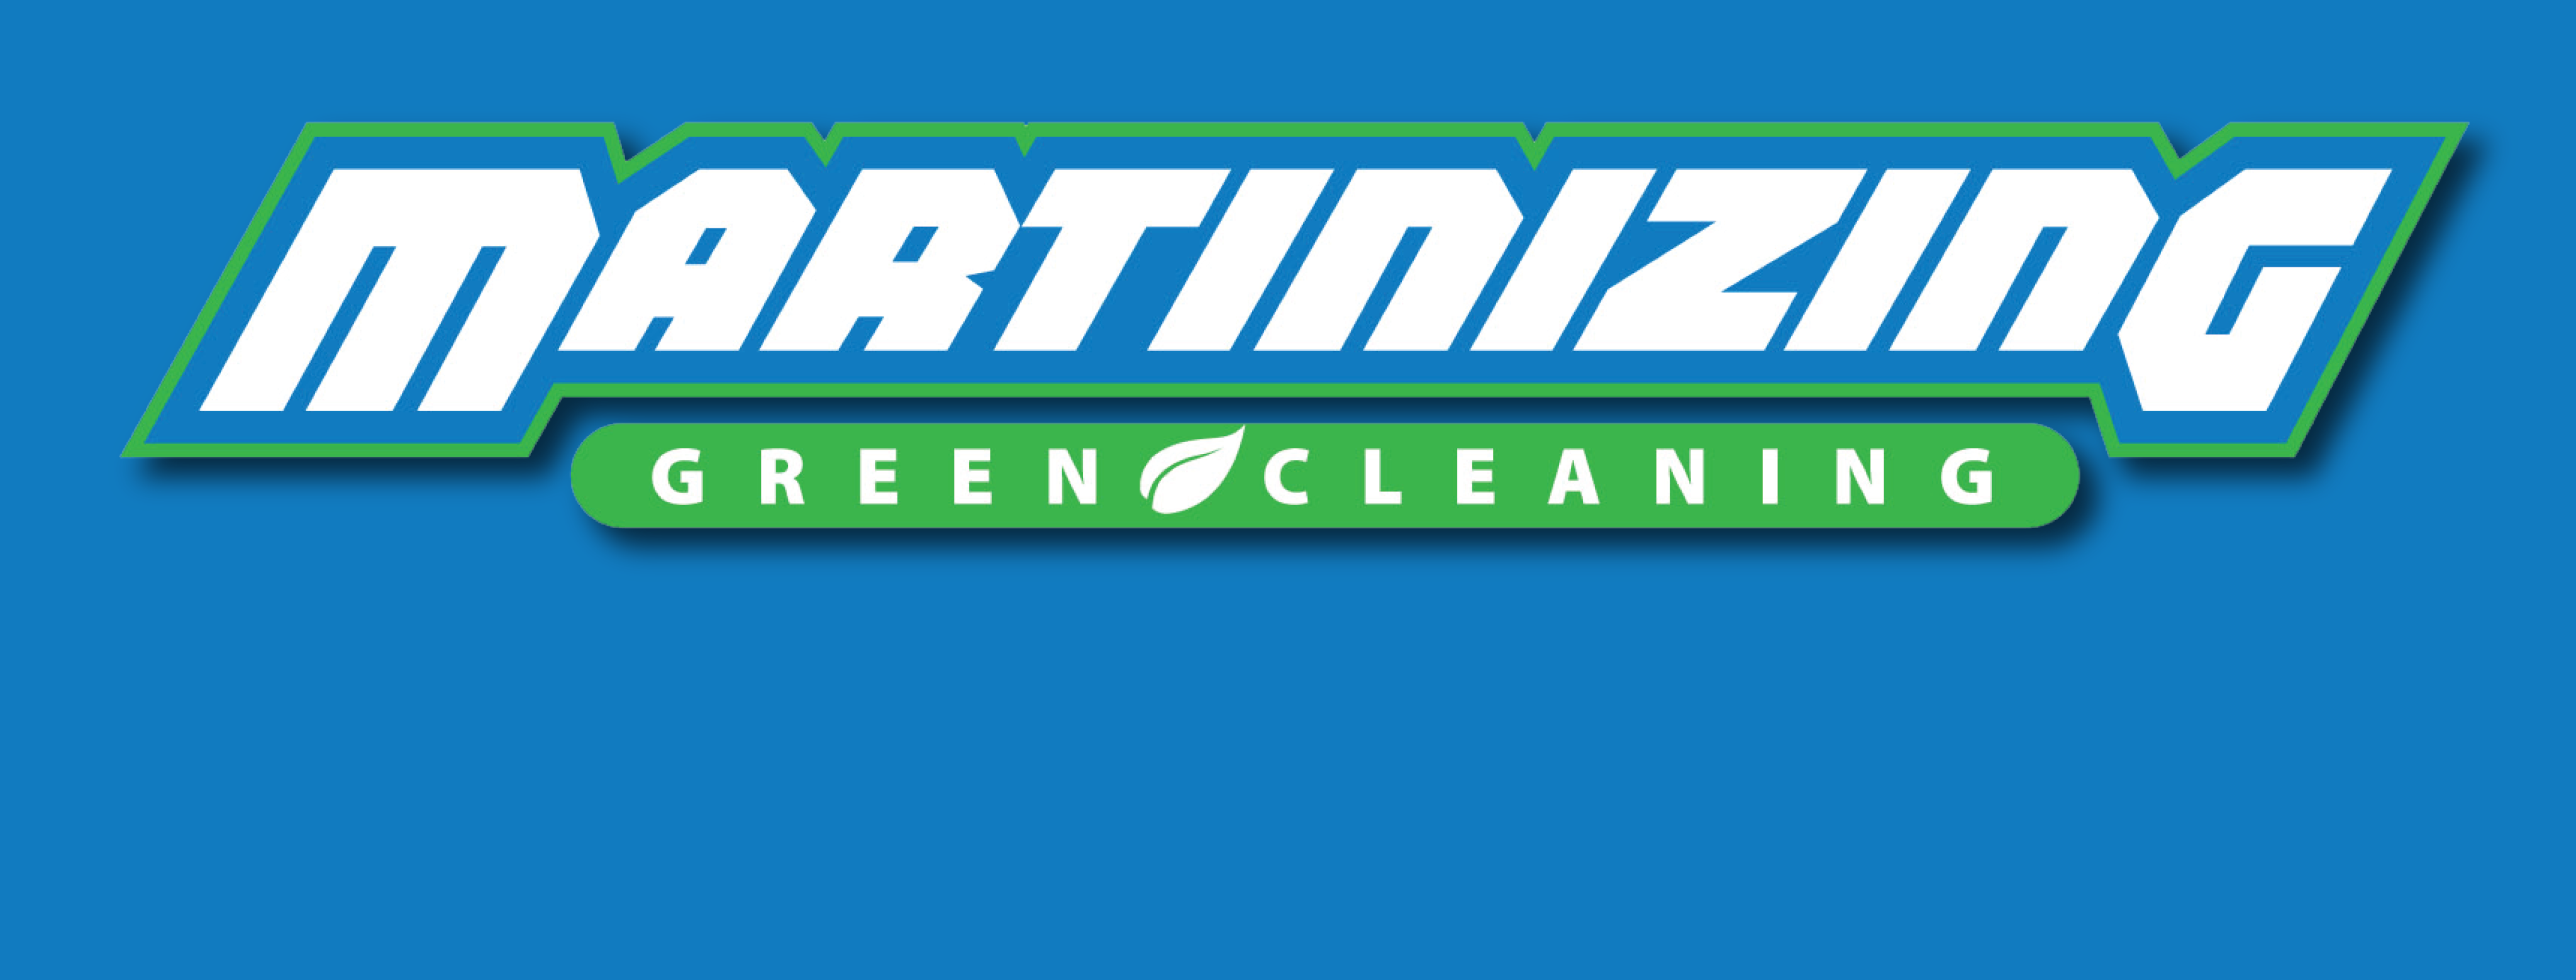 Martinizing reviews   Dry Cleaning at 2262 S. 108th Street - West Allis WI